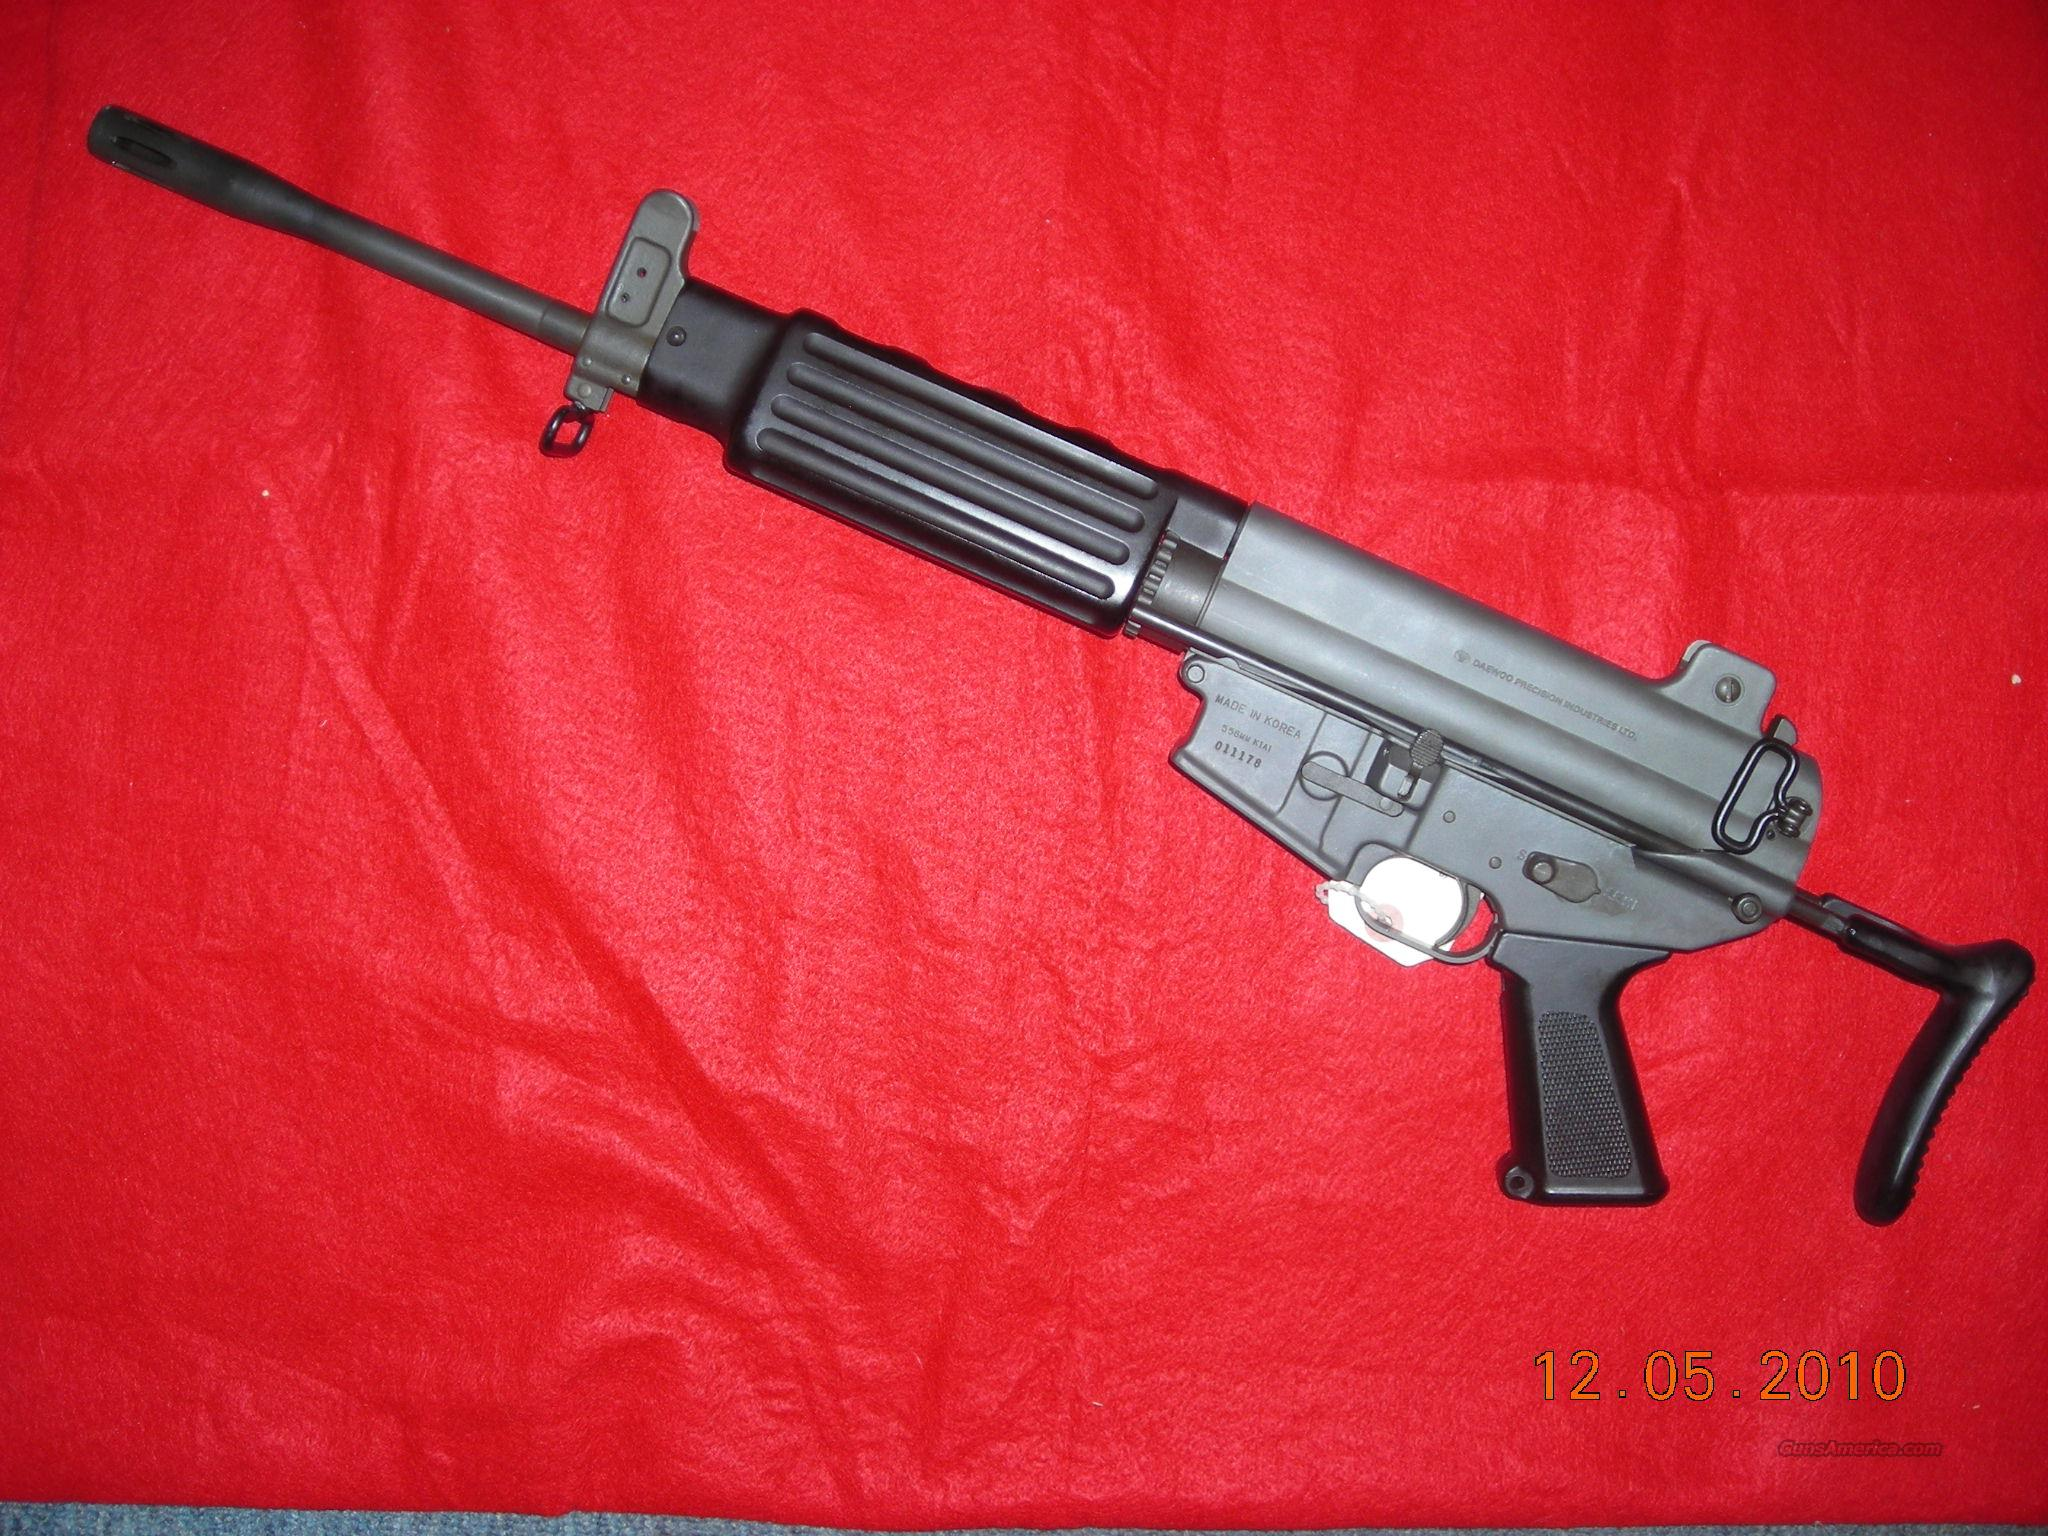 DAEWOO K1A1 223/556 CAL for sale